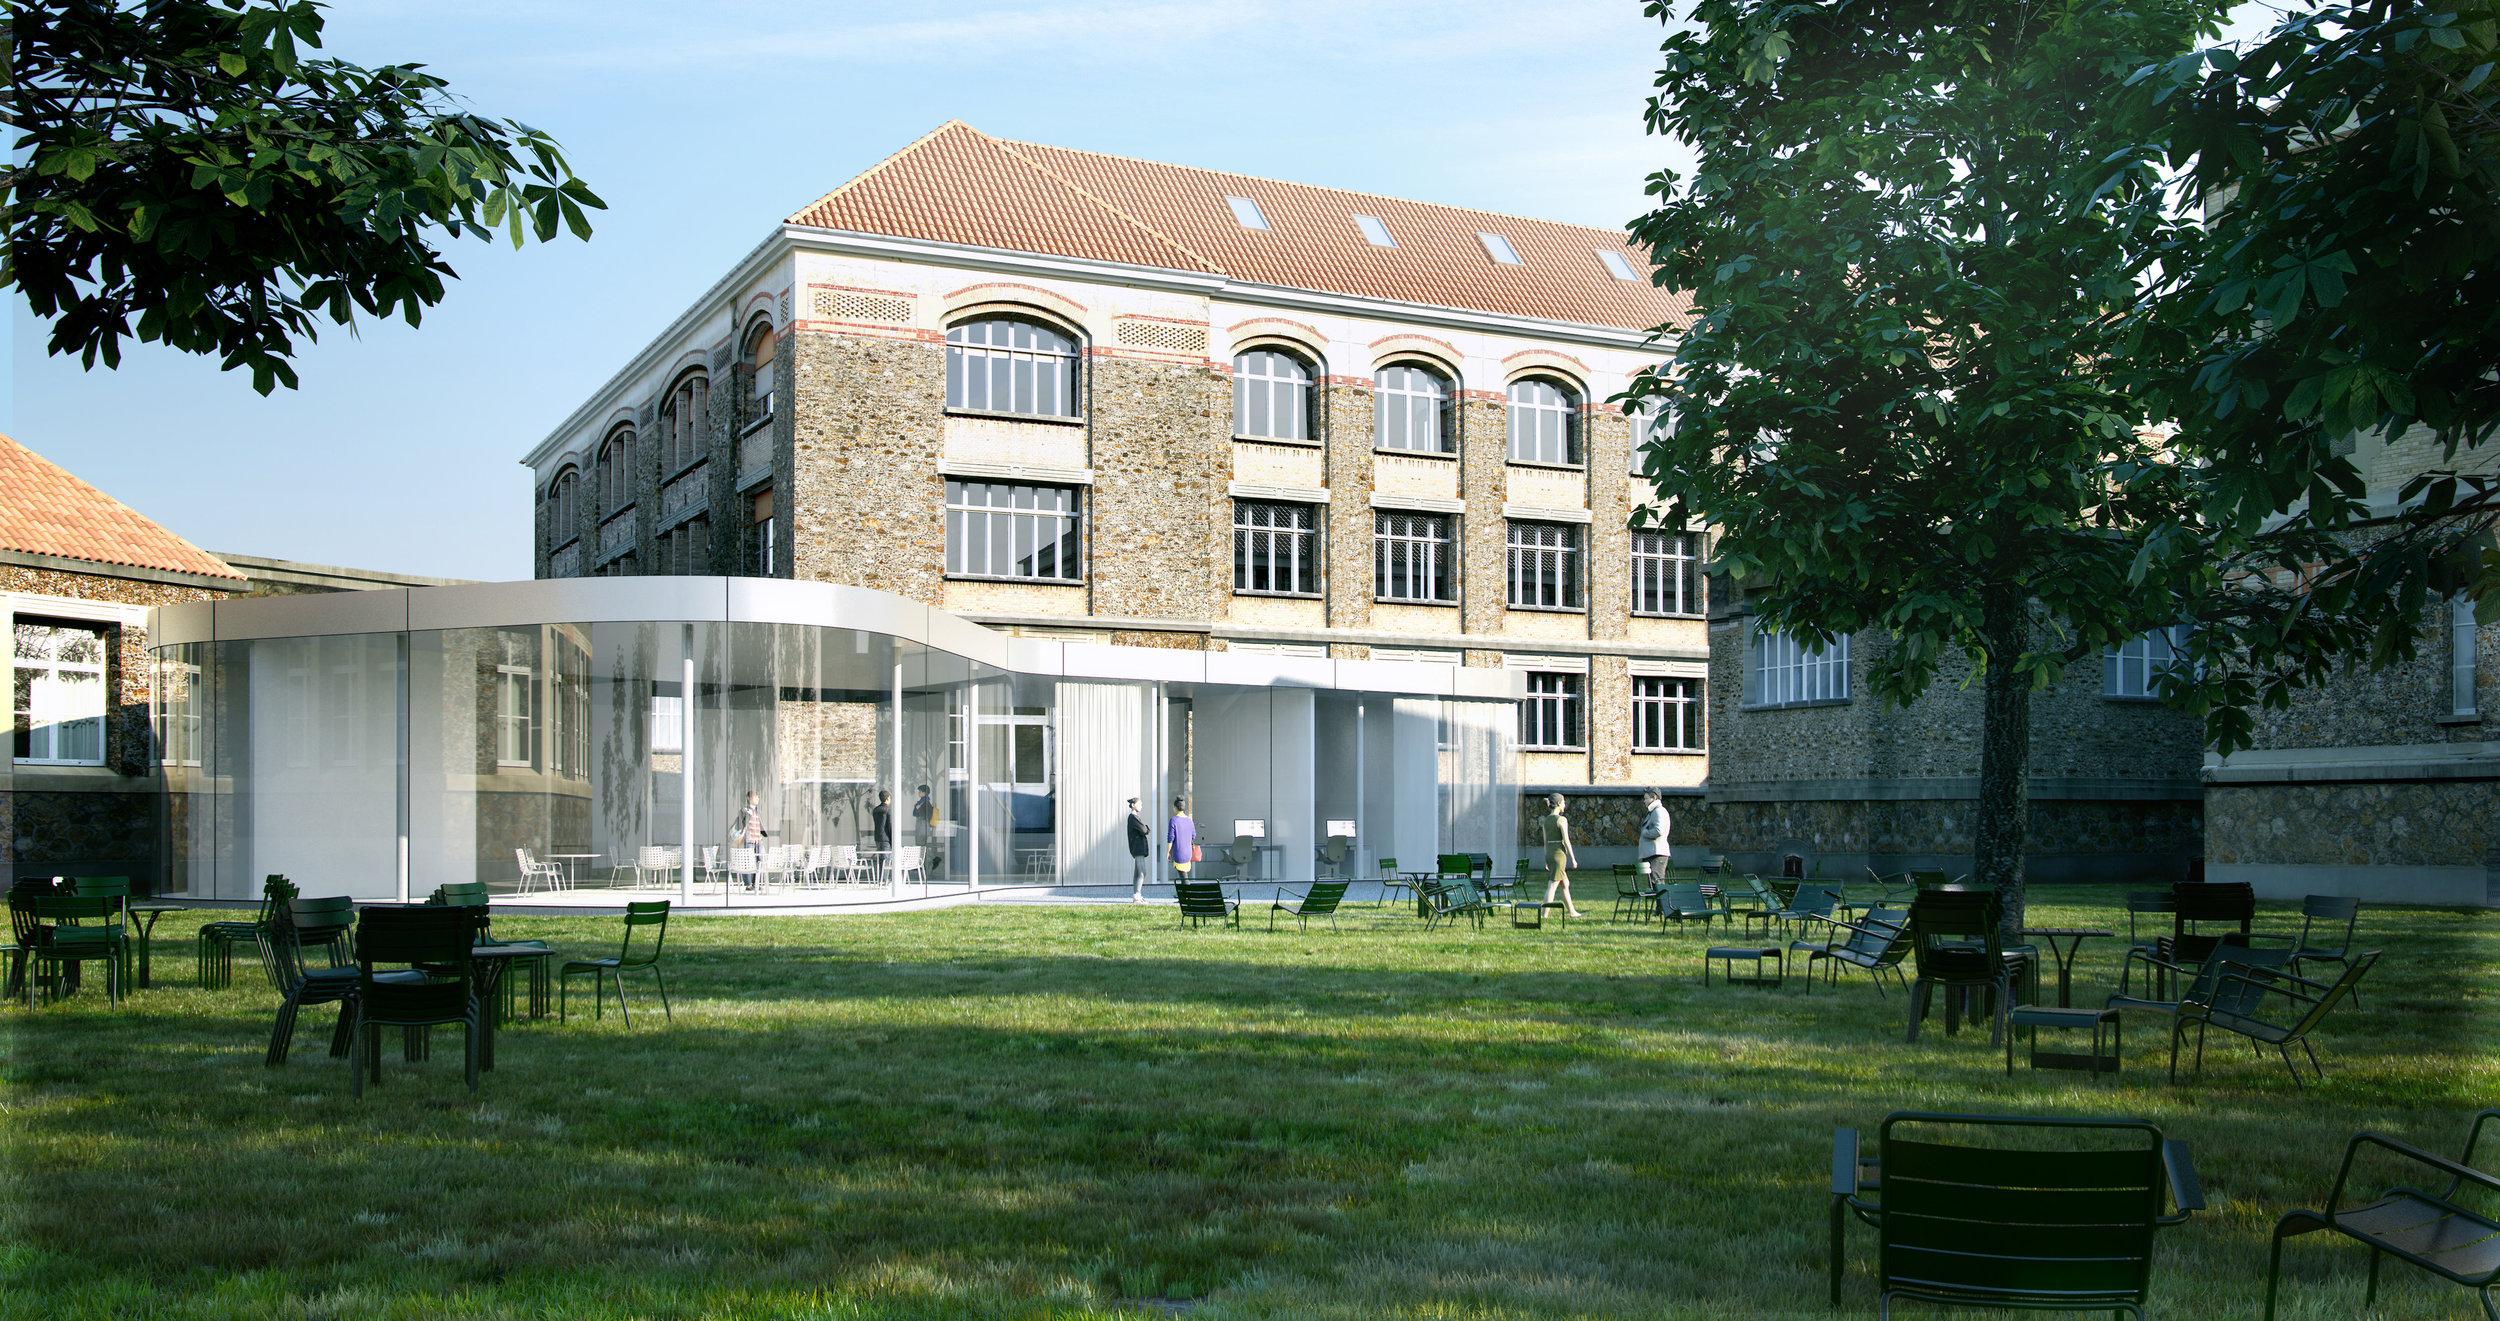 lycée_adolphe_chérioux_vitry_public_outdoor_design_christophe_gautrand_paysagiste_9.jpg